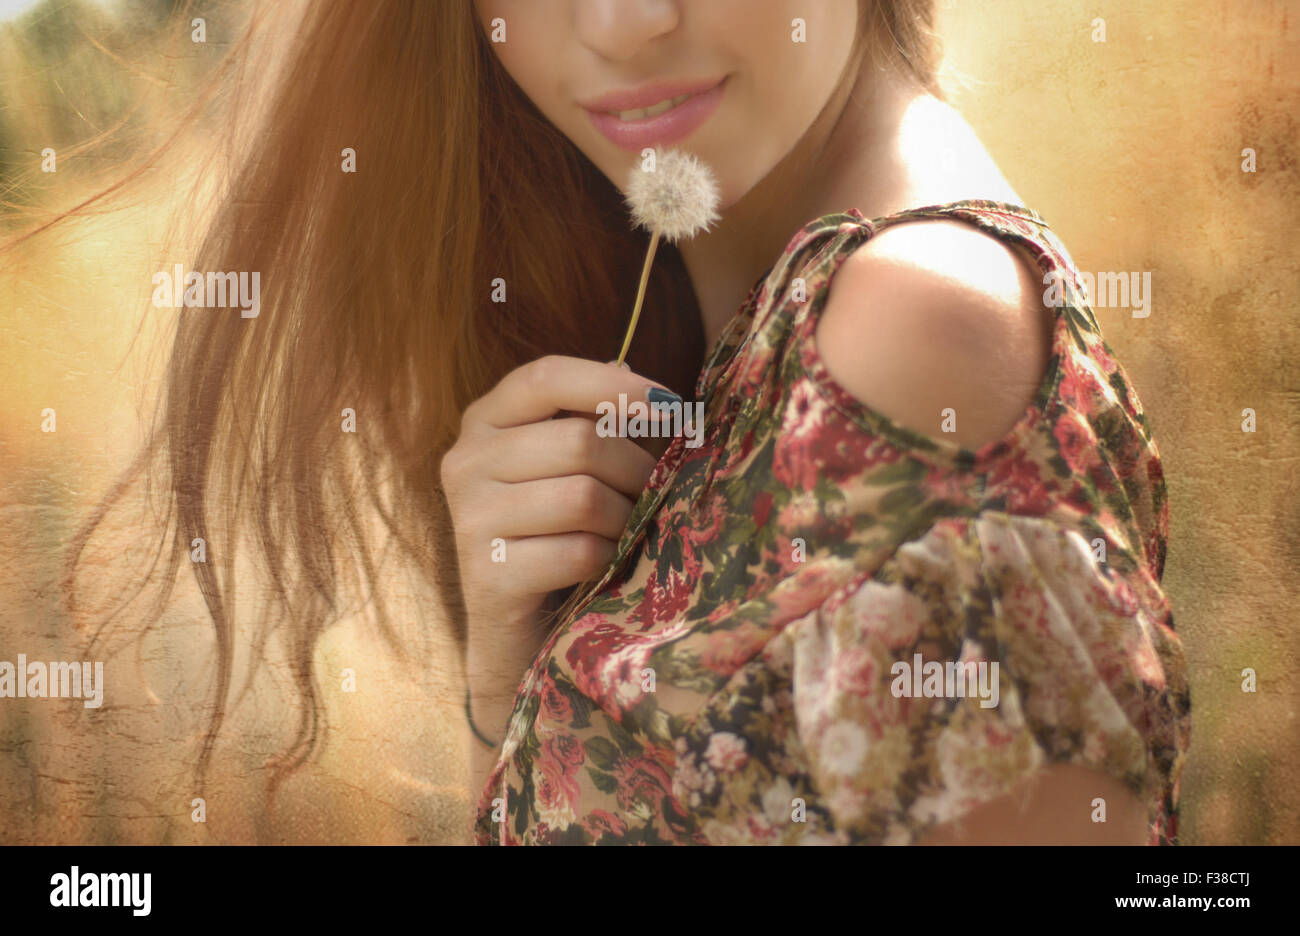 half face of a woman rose lips dandelion blonde hair Stock Photo